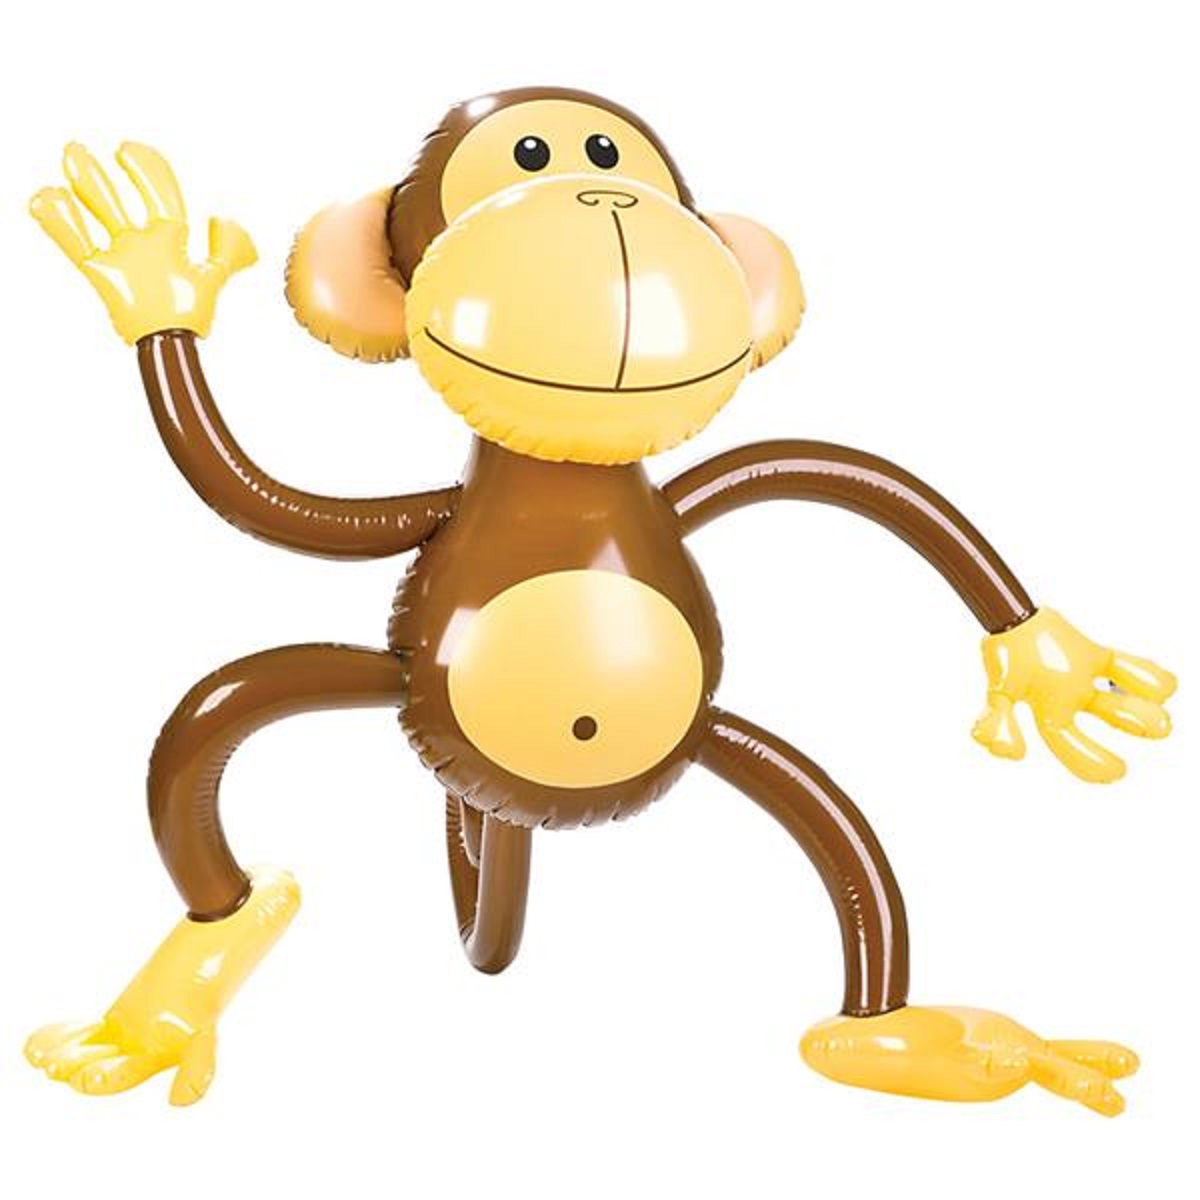 58cm Inflatable Monkey Novelty Outdoor Toy Party Kids Chimp Beach Blow Up